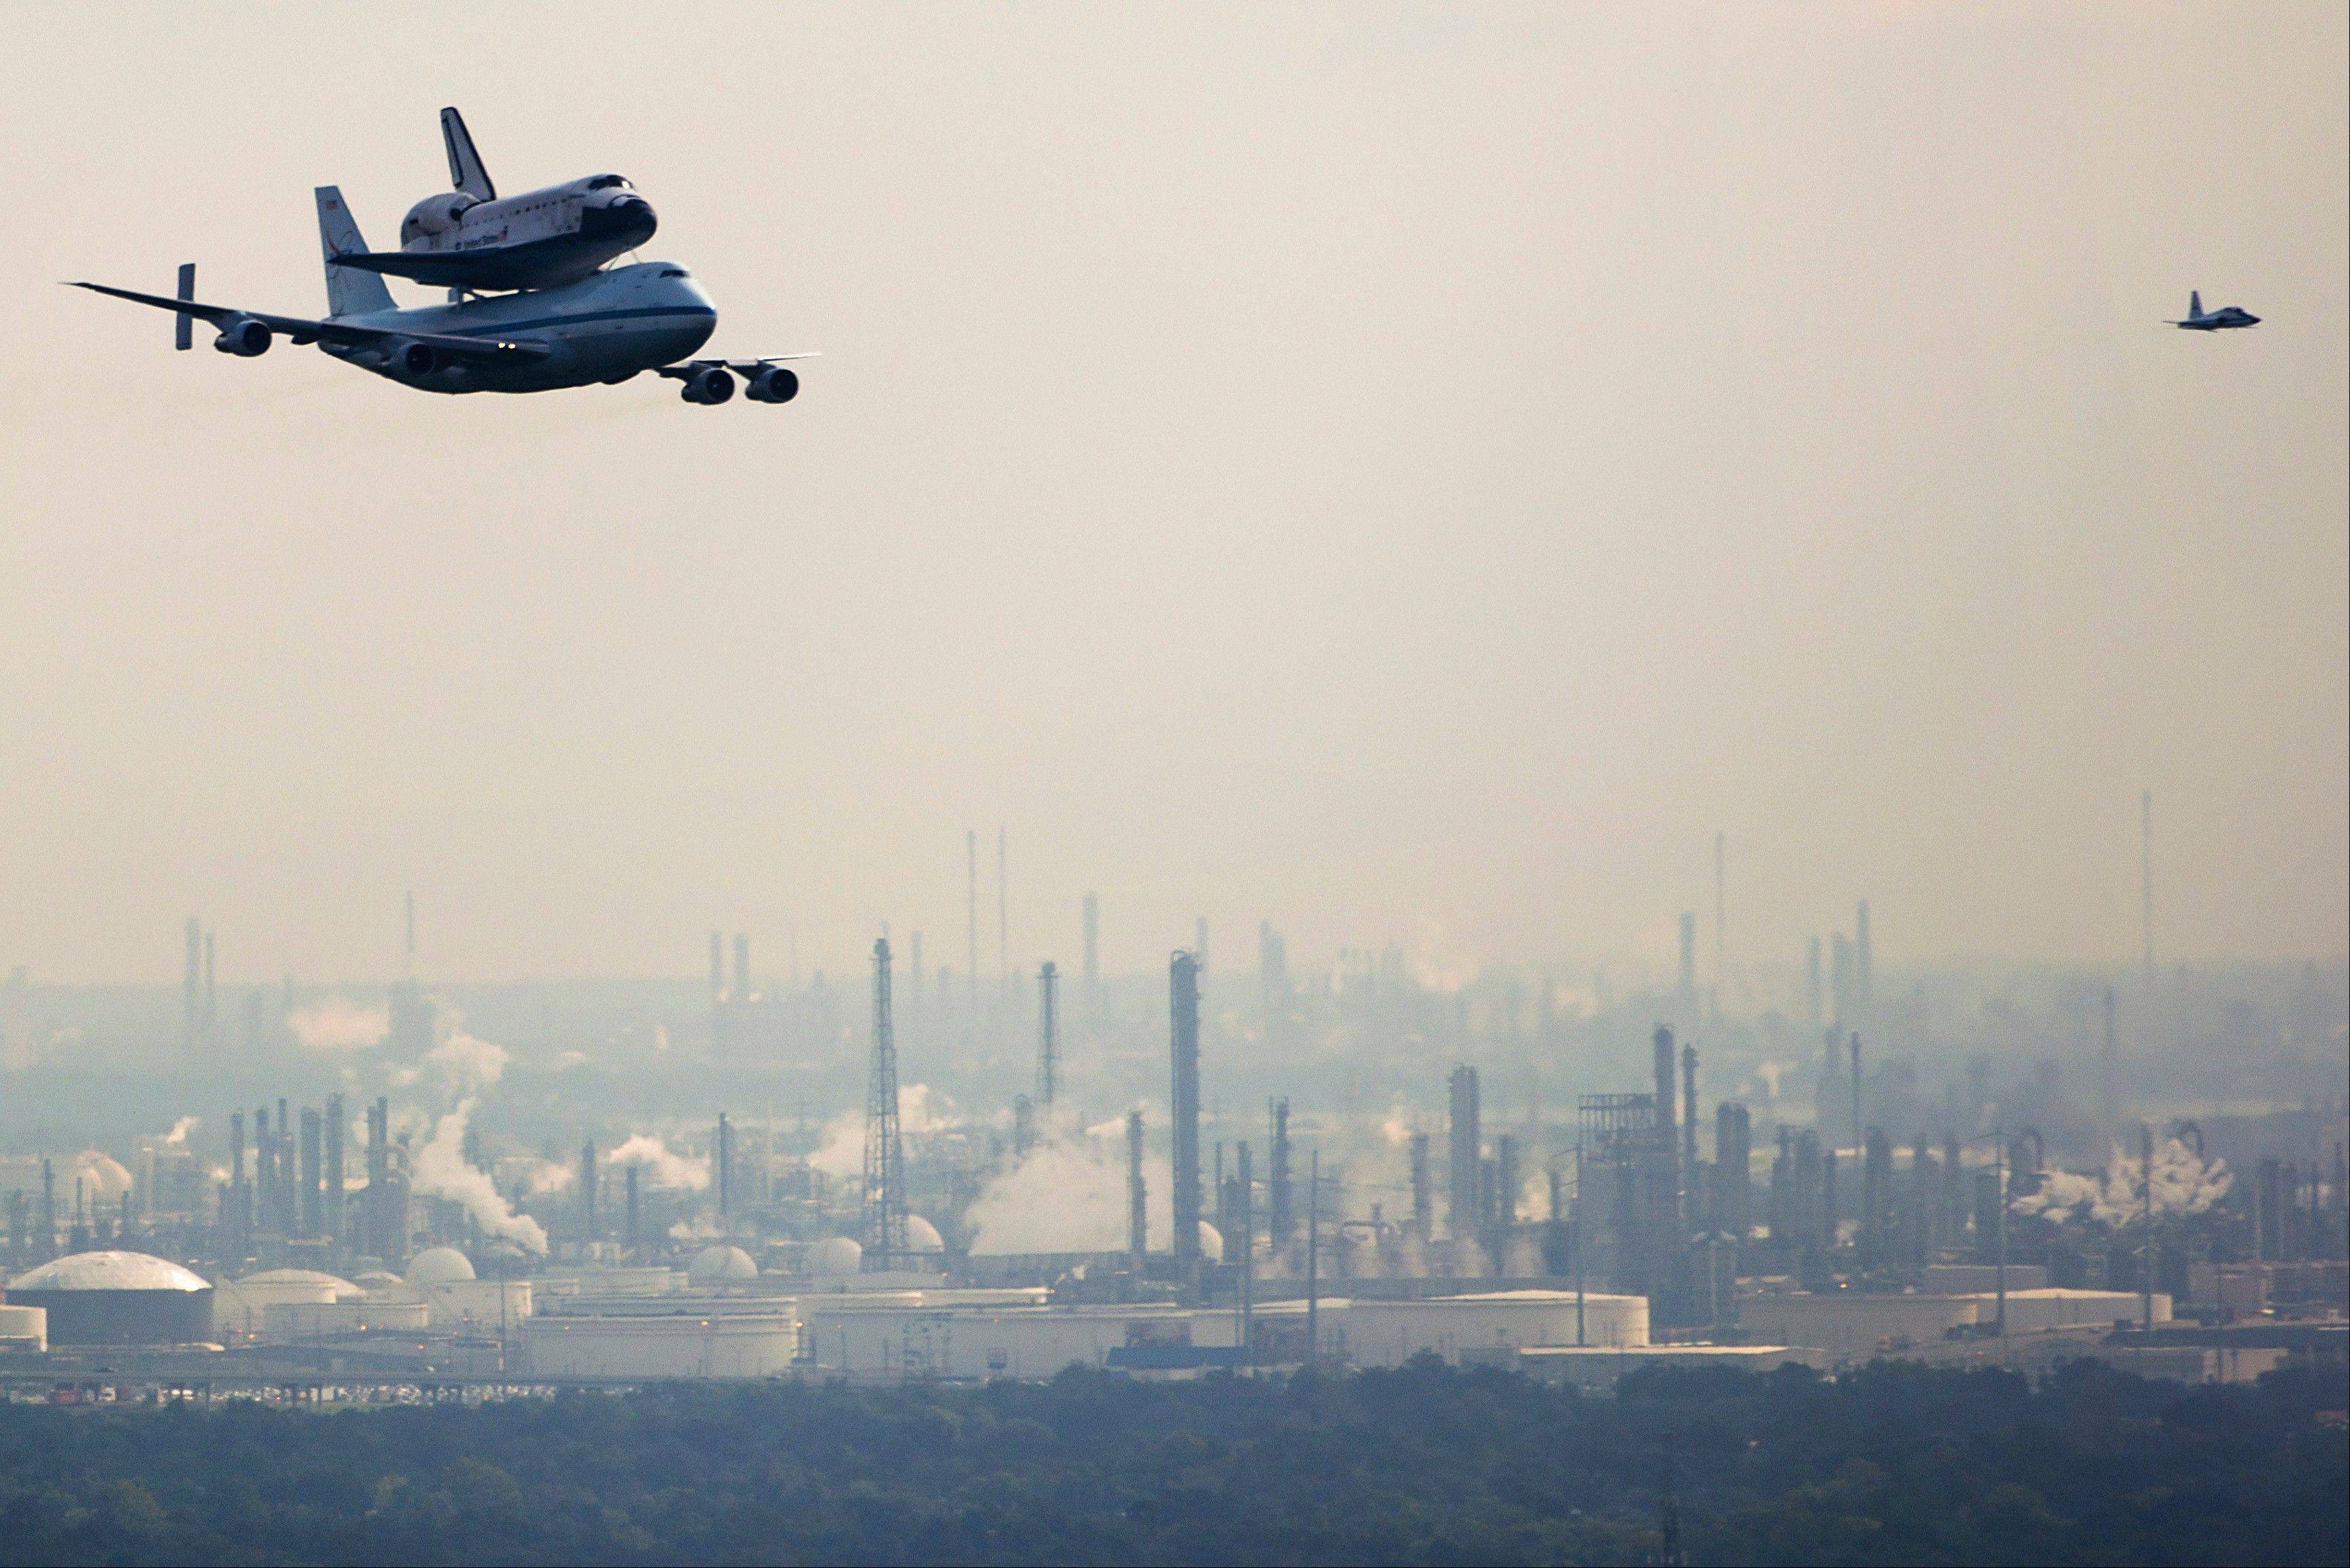 The space shuttle Endeavour, carried atop NASA's 747 Shuttle Carrier Aircraft, passes over petrochemical facilities on the Houston Ship Channel during a flyover on Wednesday, Sept. 19, 2012, in Houston. Endeavour stopped in Houston on its way from the Kennedy Space Center to the California Science Center in Los Angeles, where it will be placed on permanent display.